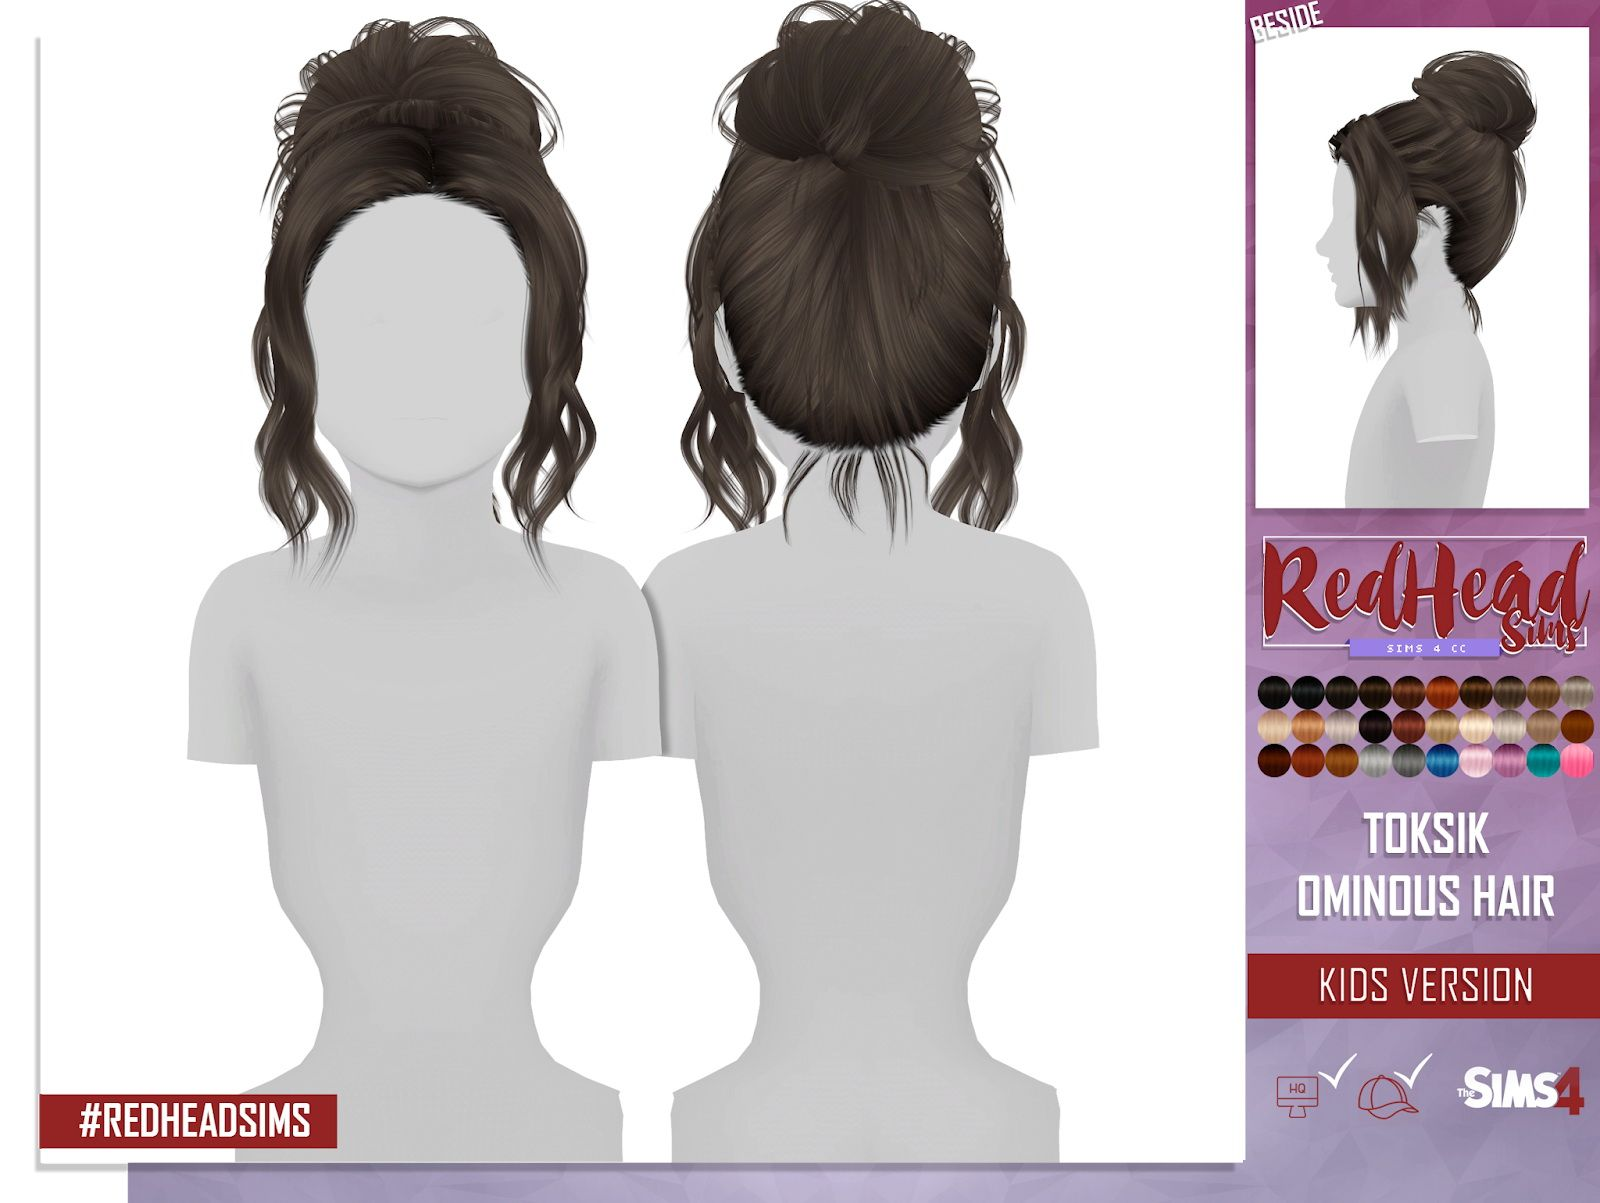 Coupure Electrique: Toksik Omnious hair retextured kids and toddlers version #toddlers